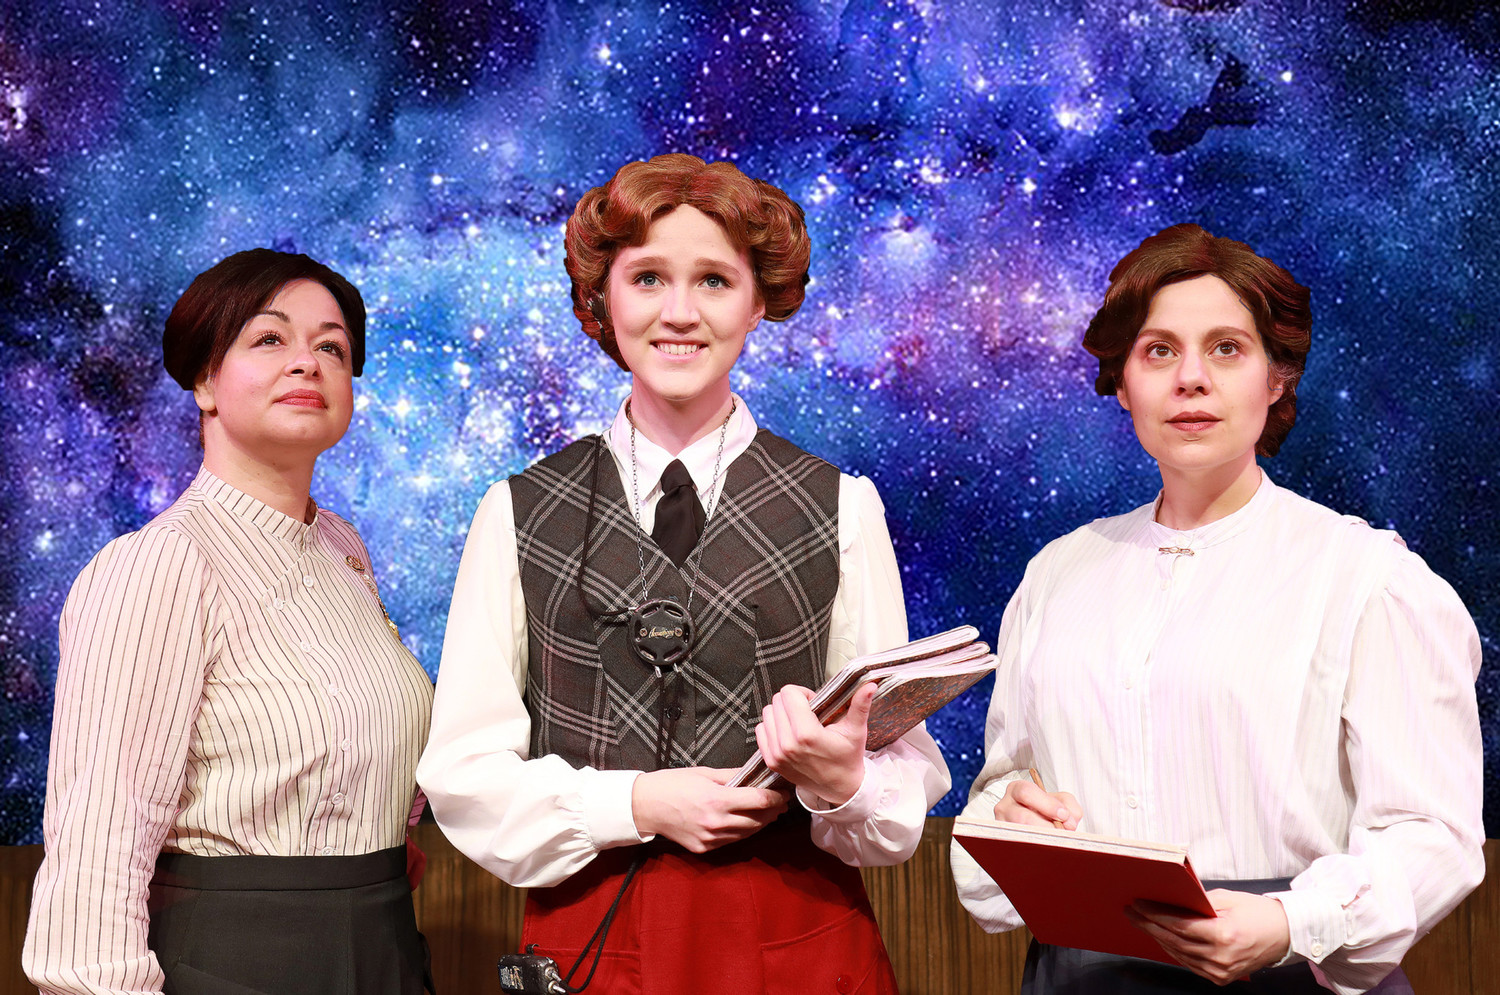 BWW Review: SILENT SKY at Des Moines Playhouse: Keep Looking Up